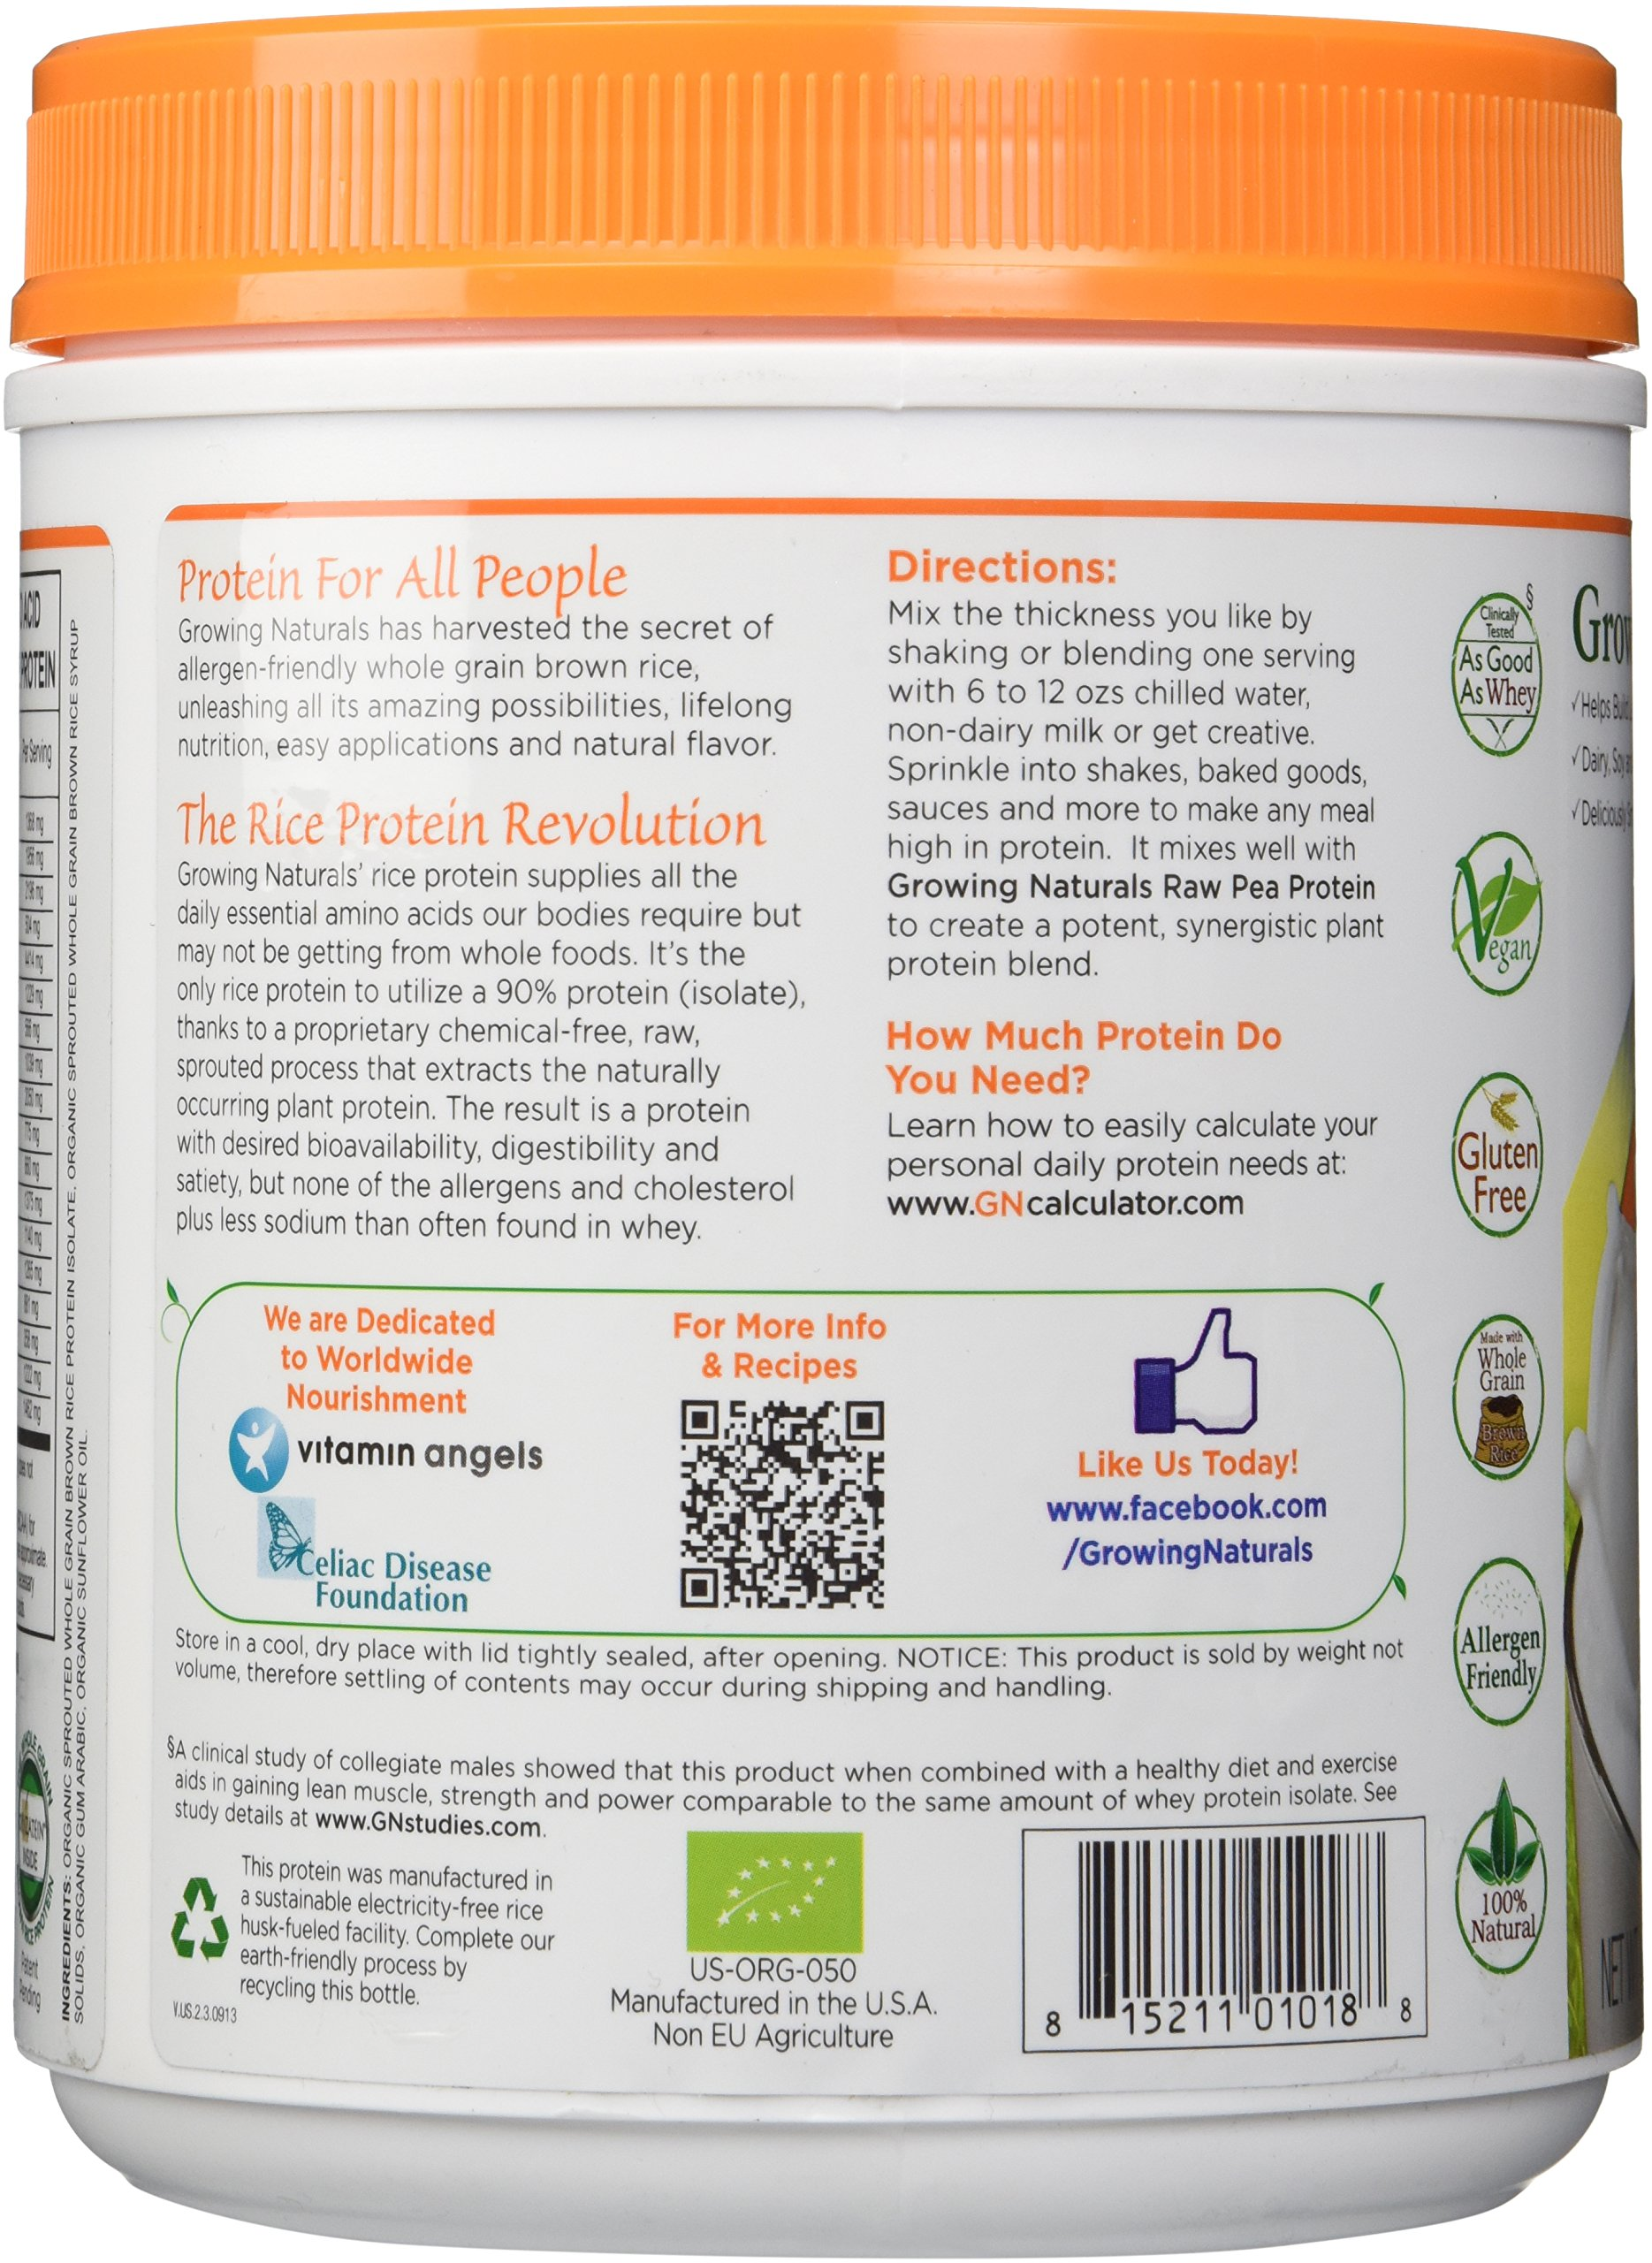 Growing Naturals Organic Rice Protein Powder, Original, 16.2 Ounce by Growing Naturals (Image #5)